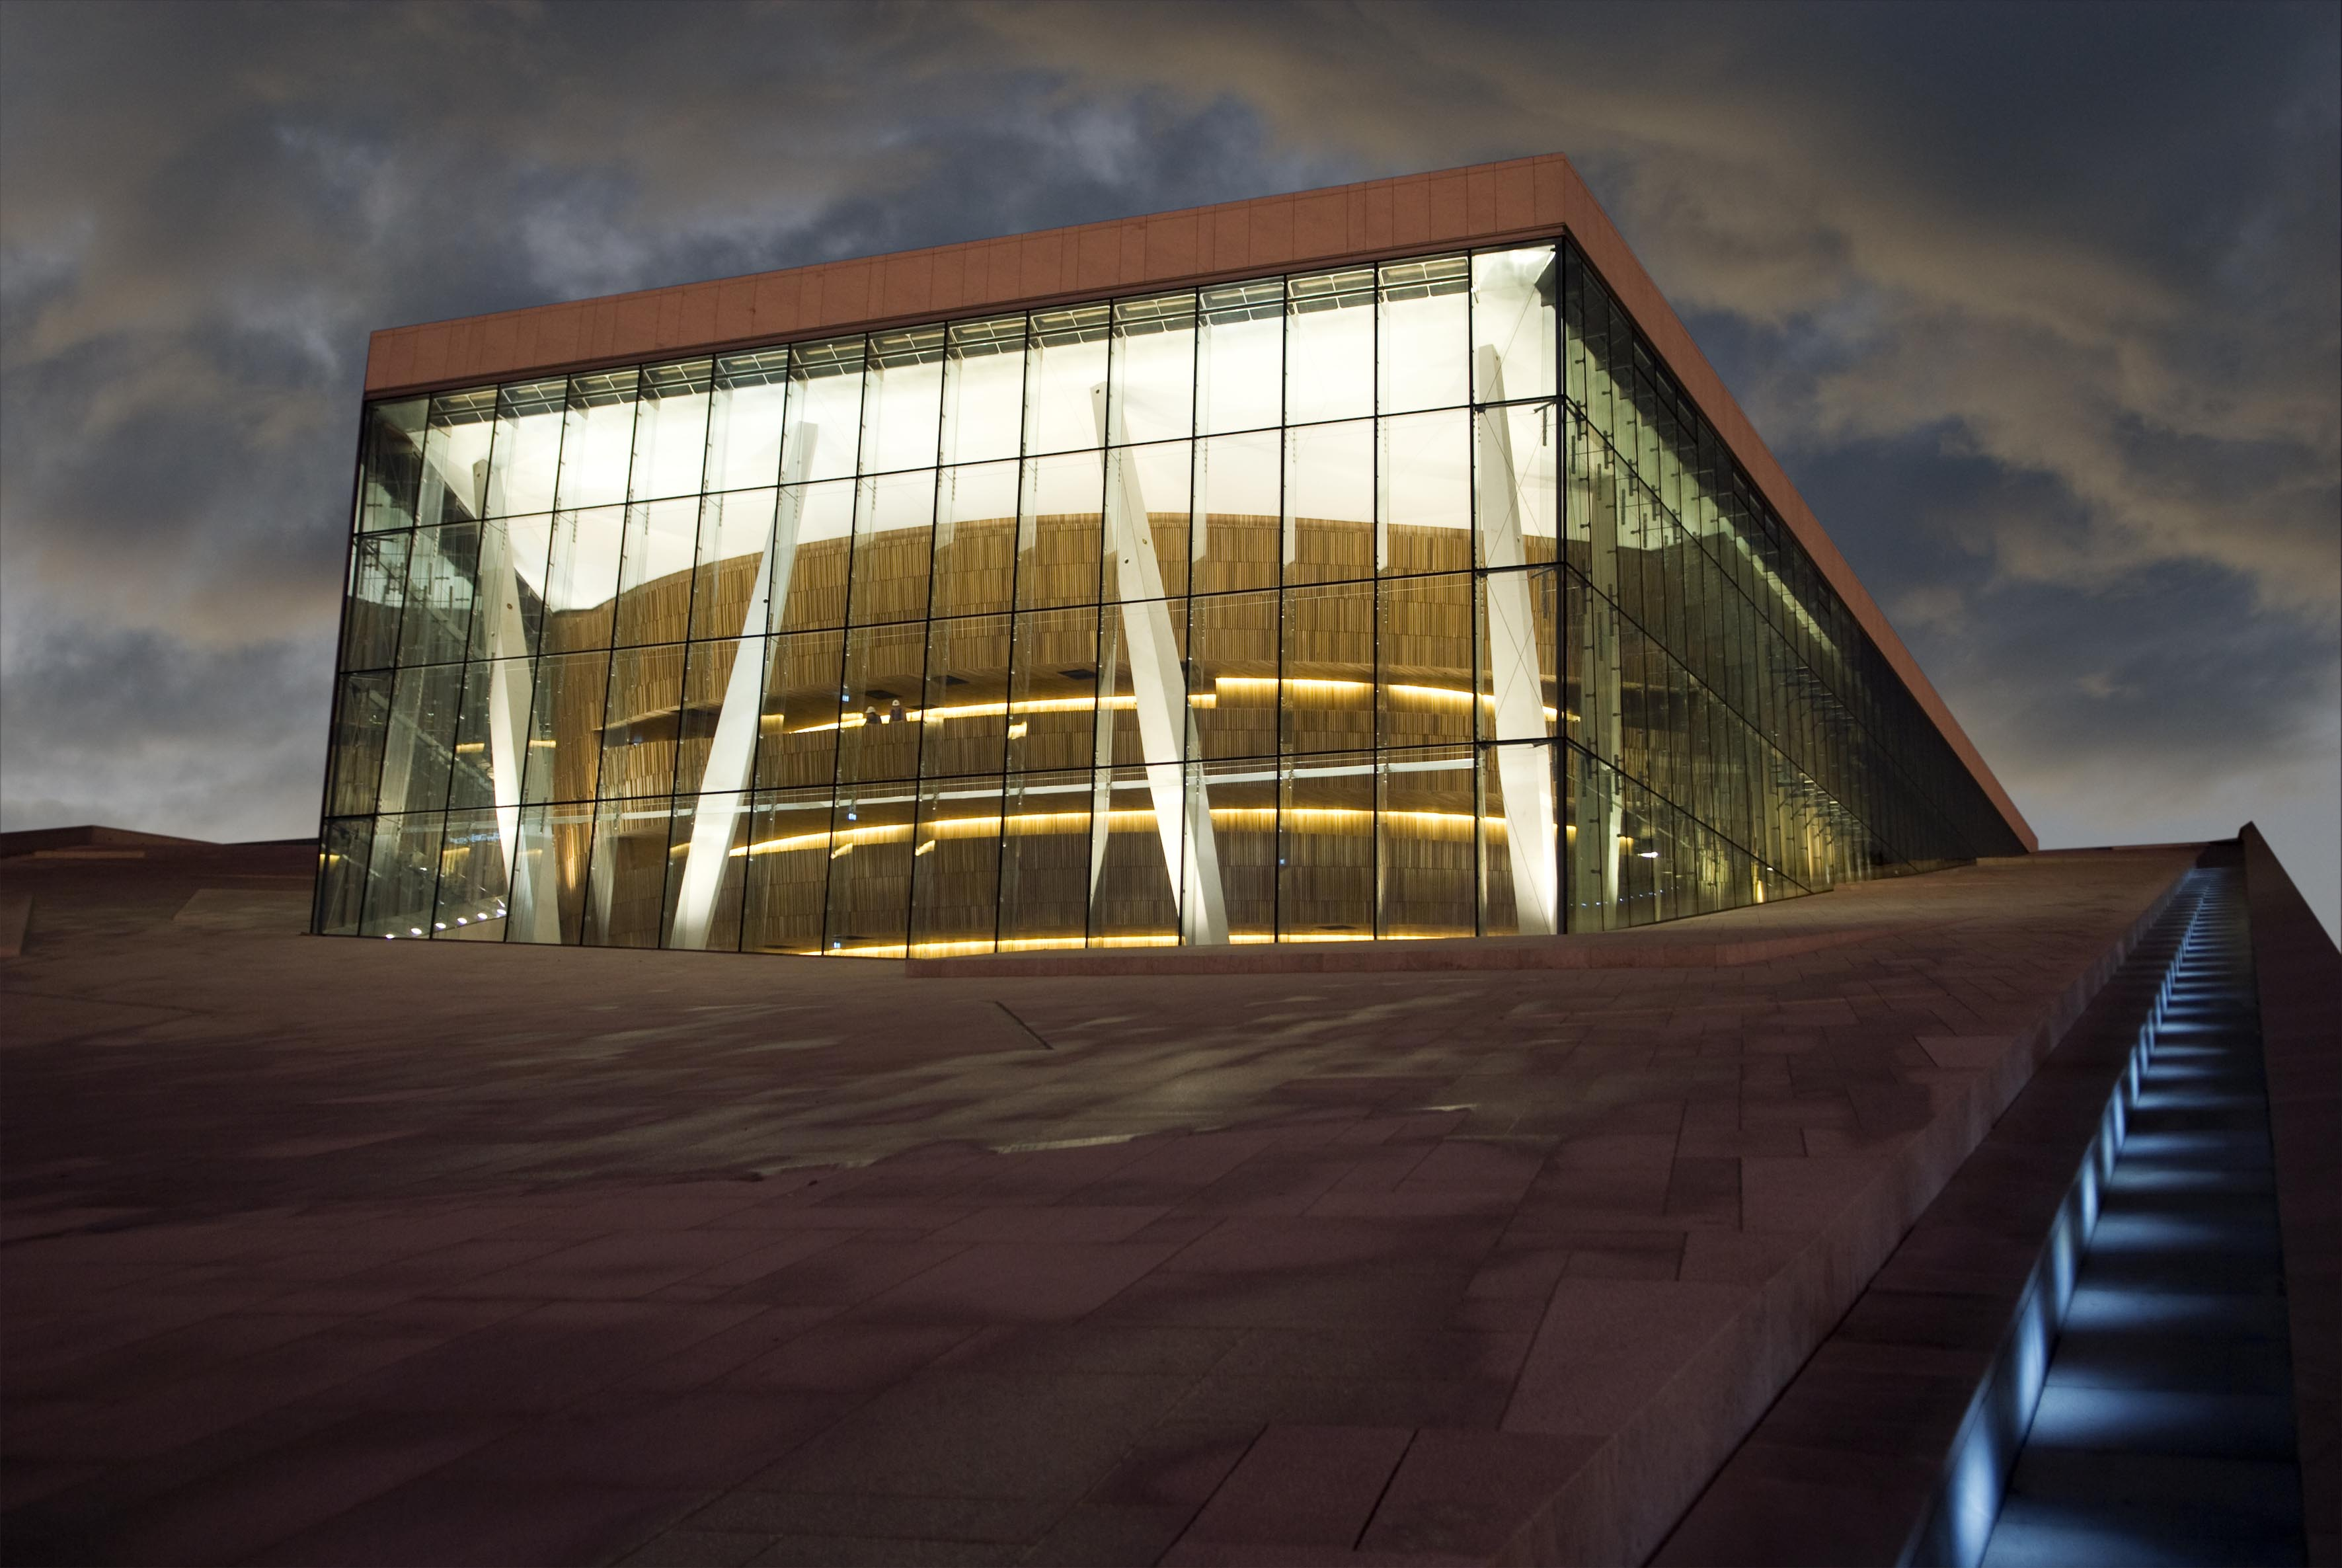 Oslo Opera House by night - Erik Berg